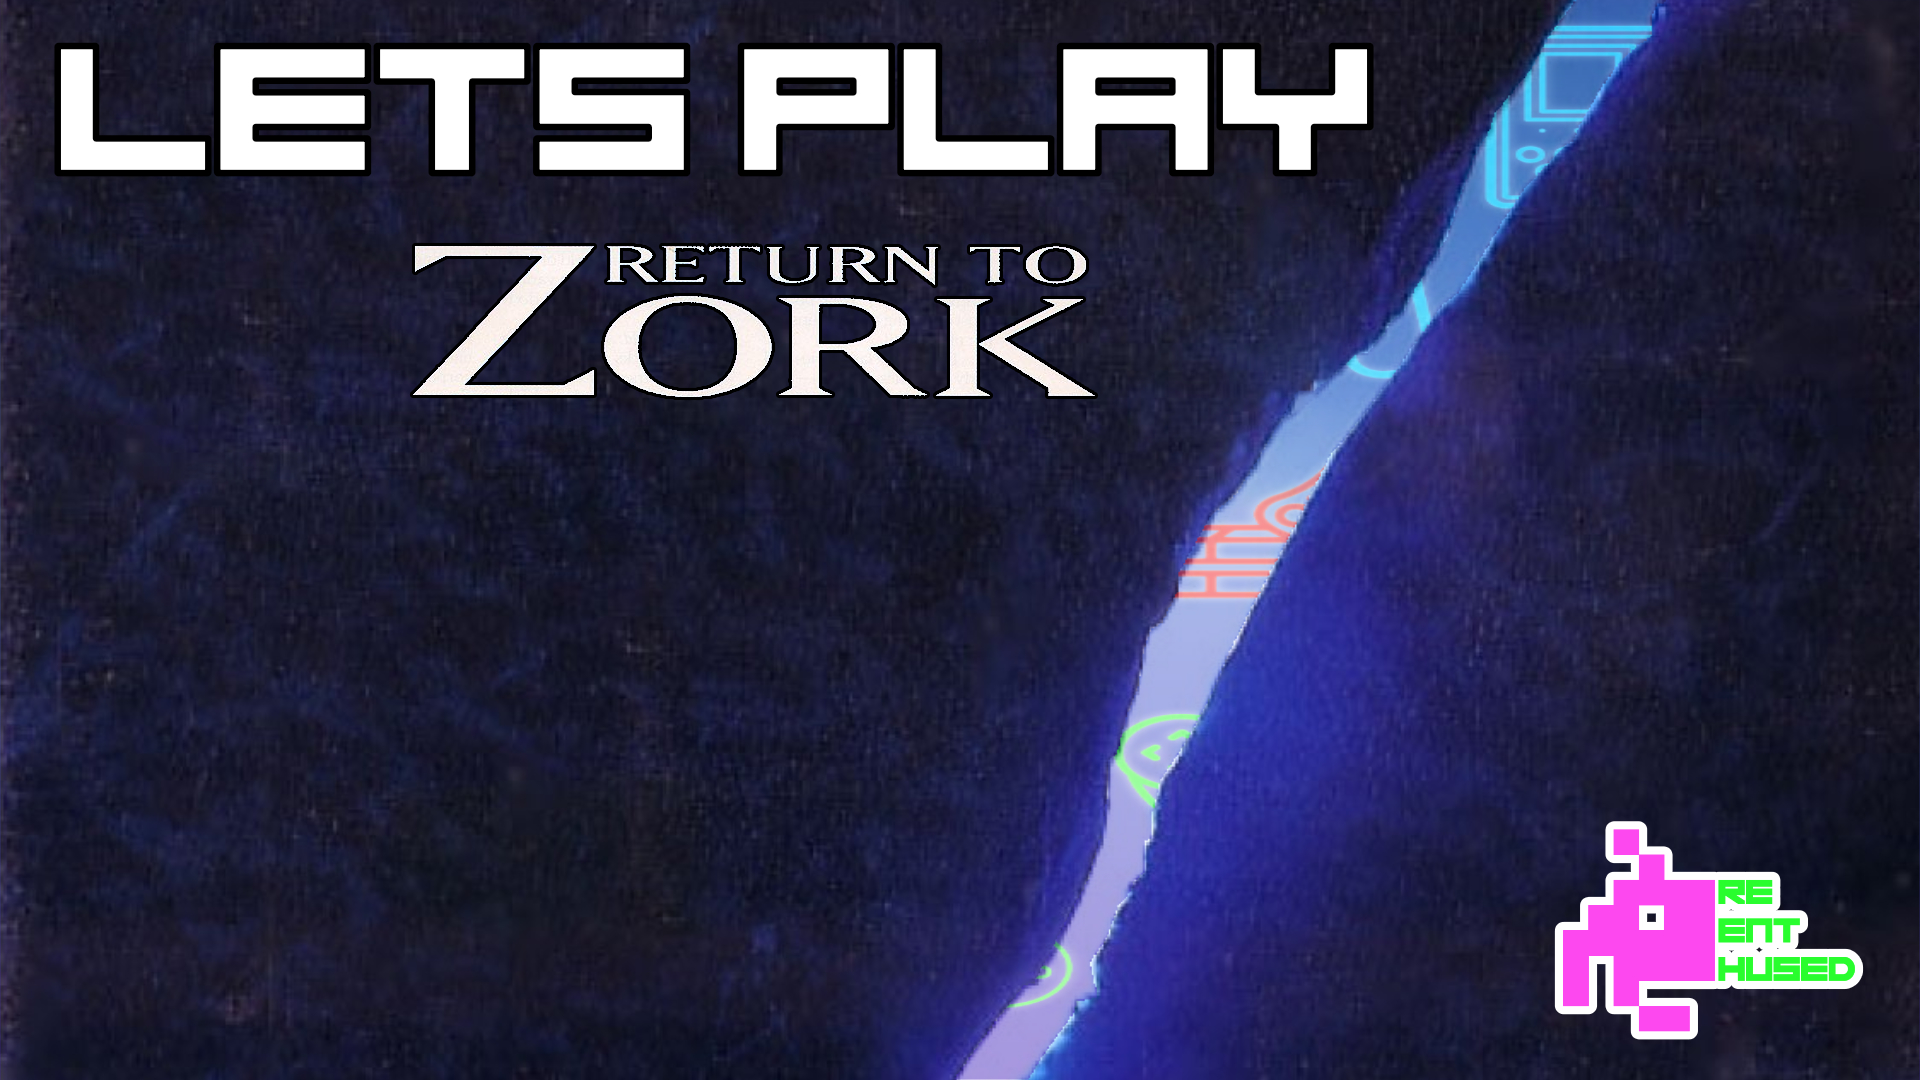 Lets Play: Return to Zork on the NEC PC-FX - Re-enthused